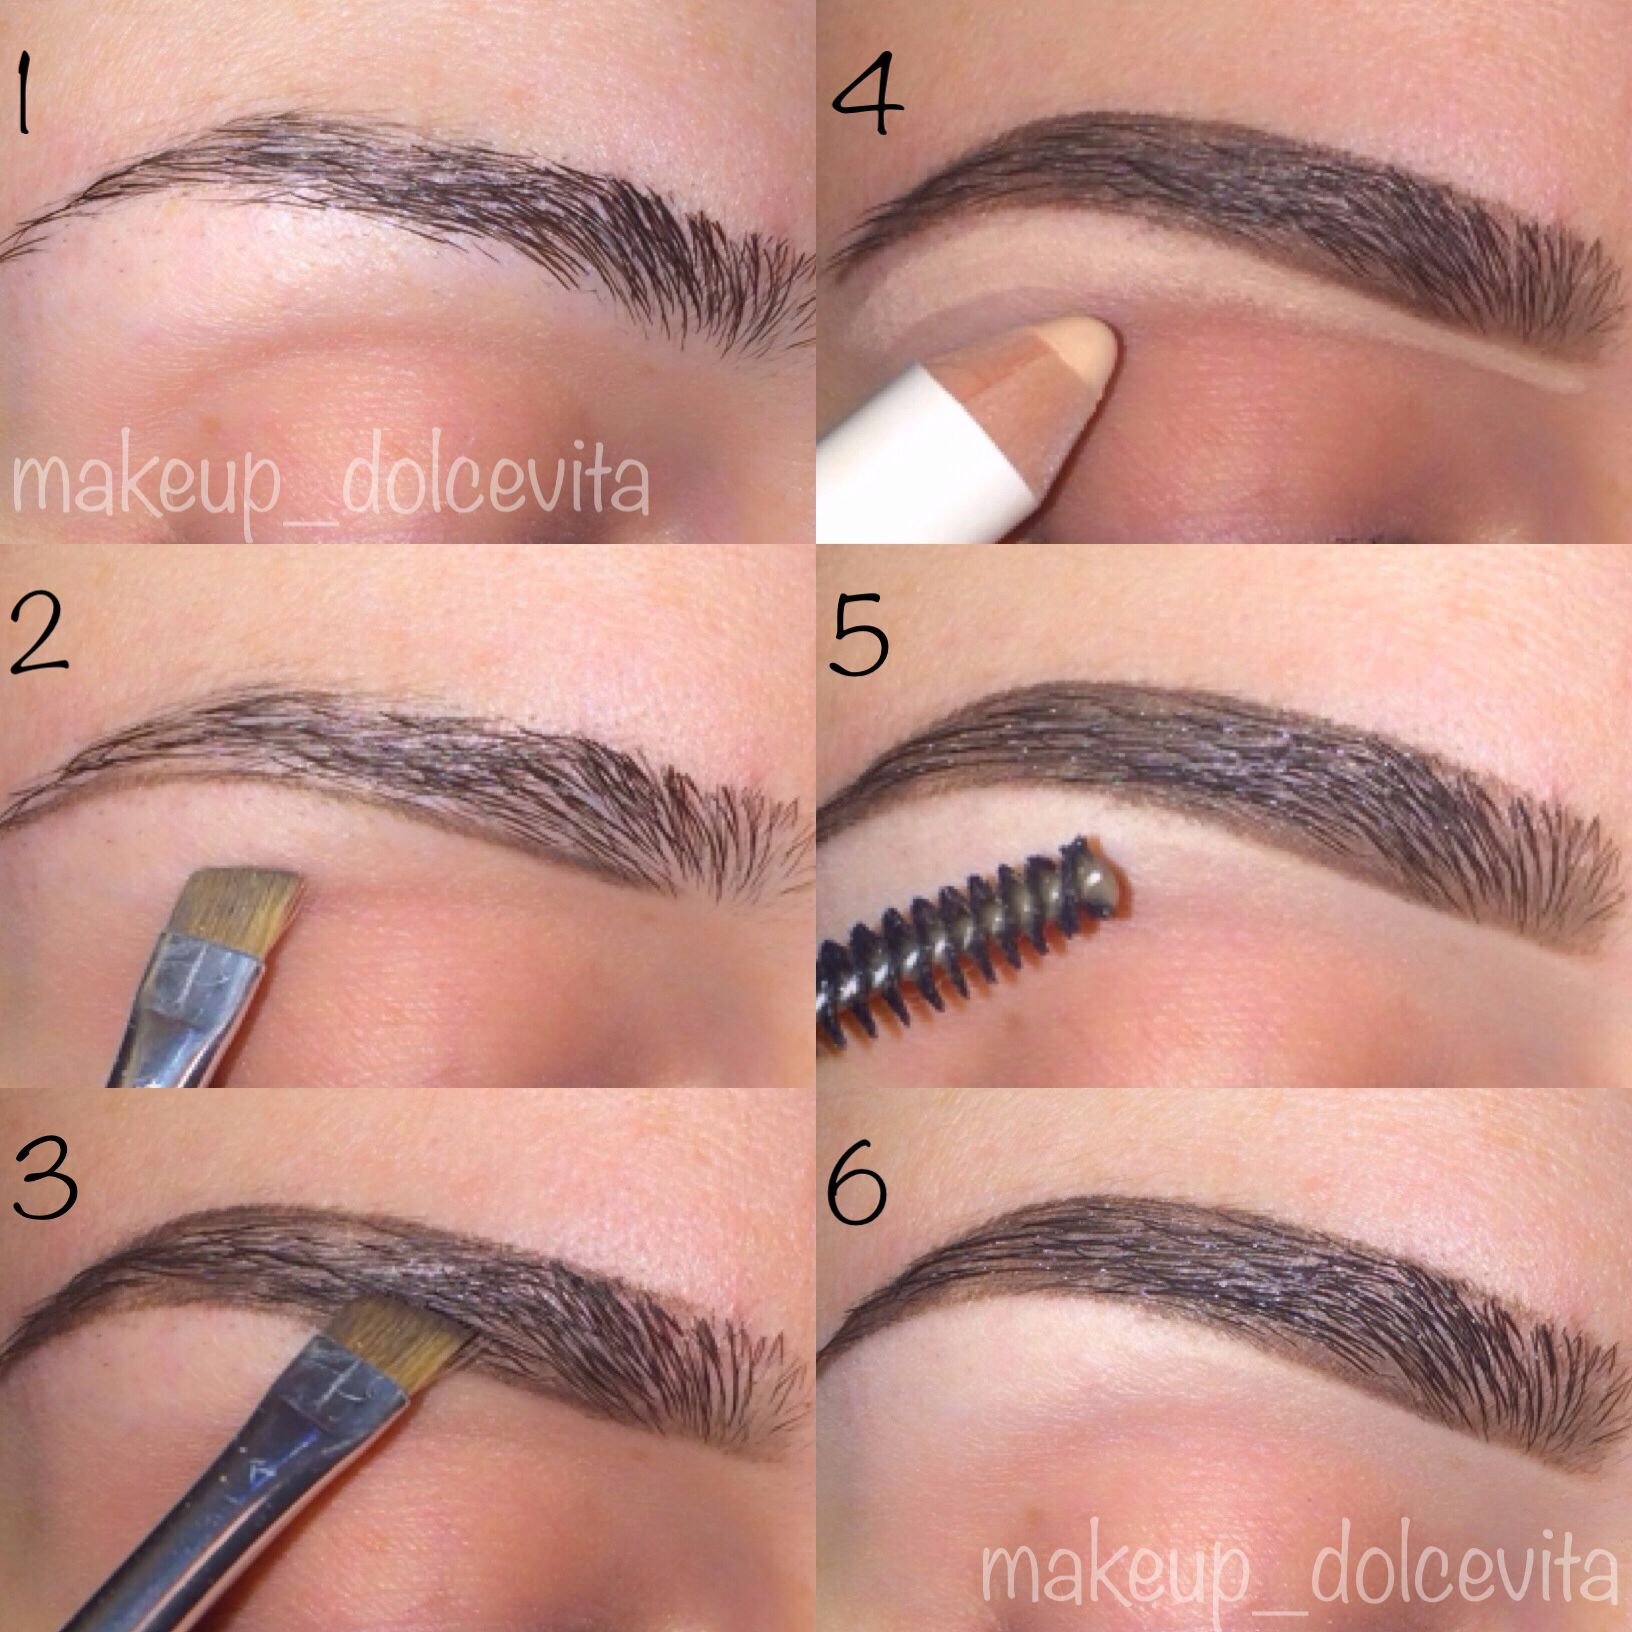 Pin By Alachell Butler On Needs Pinterest Eyebrow Tutorials And